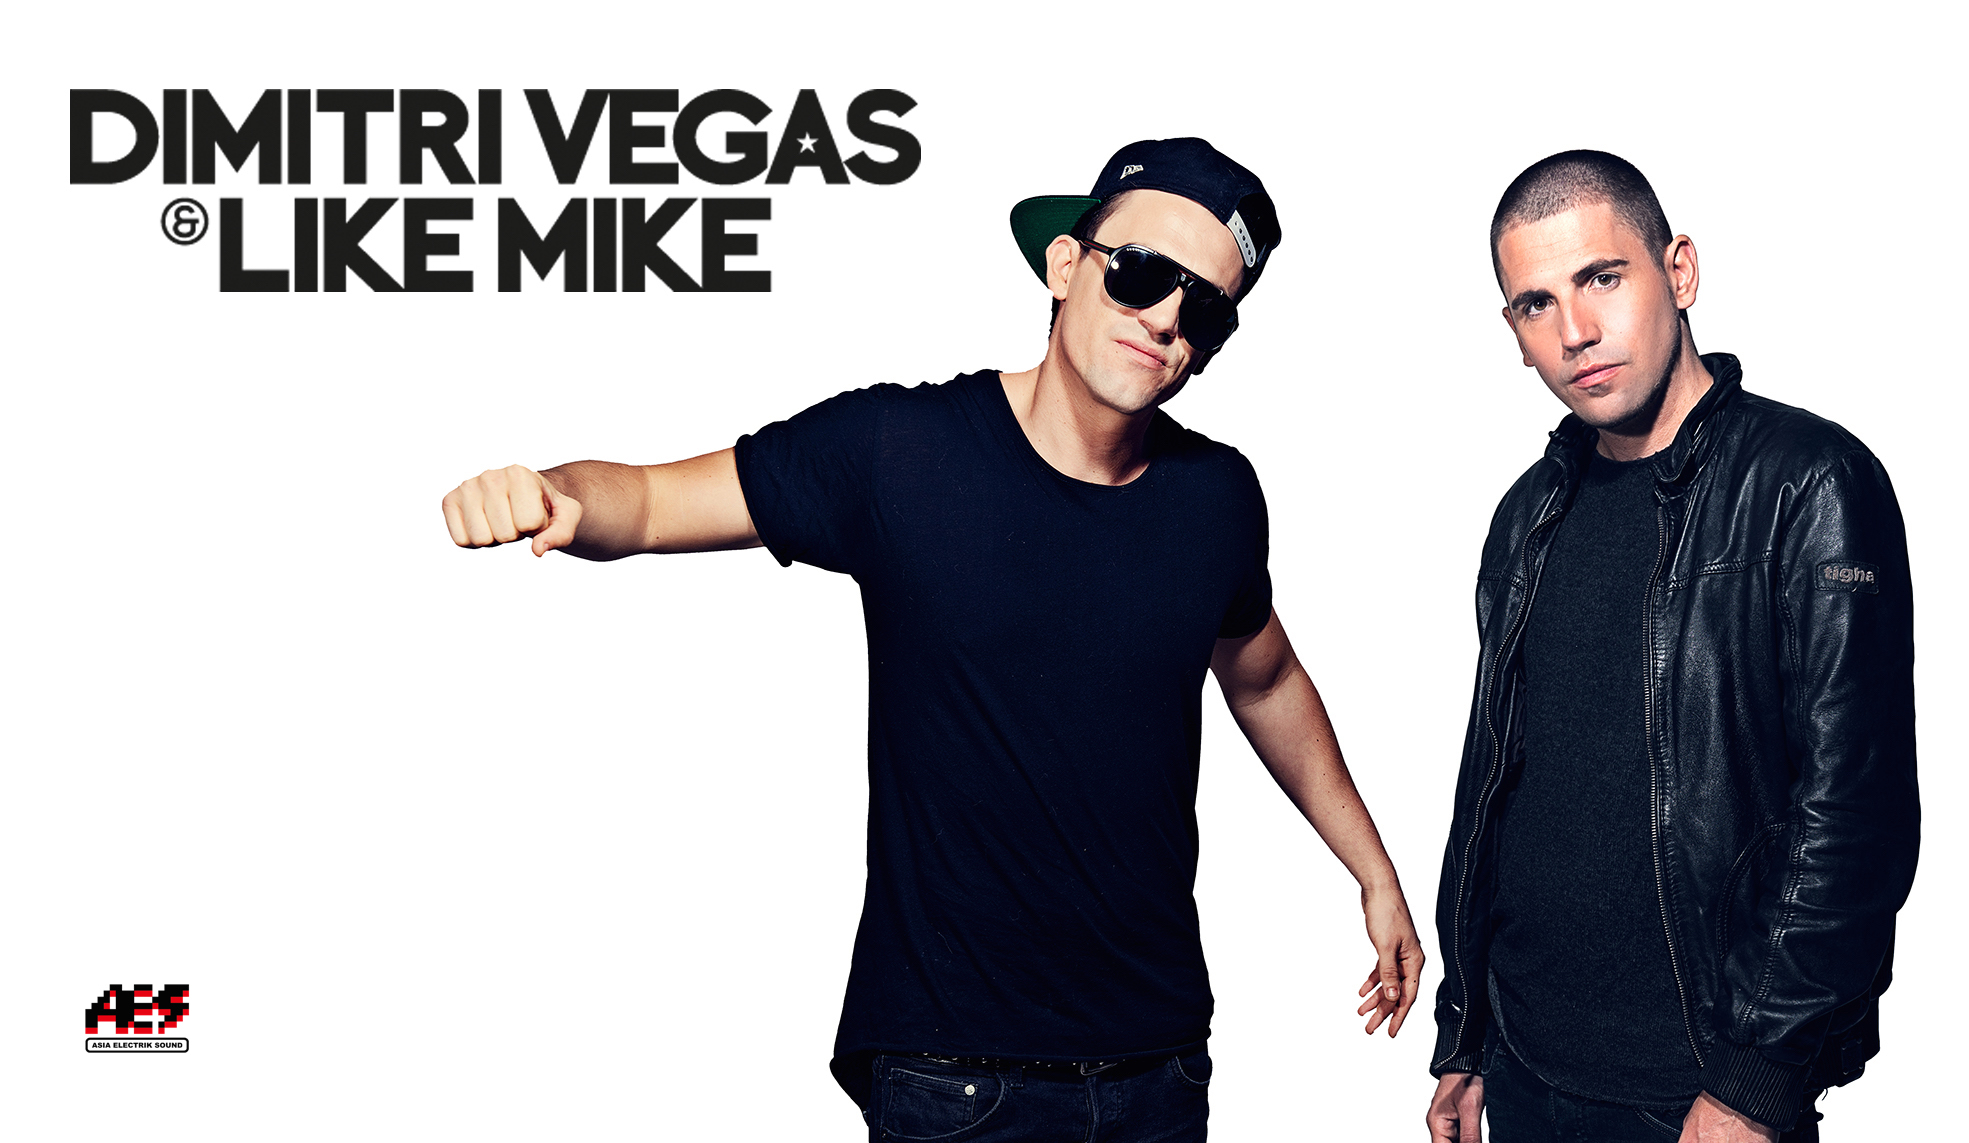 58428-dimitri-vegas-like-mike-releases-2h-concert-on-youtube-in-full-hd-914637-2